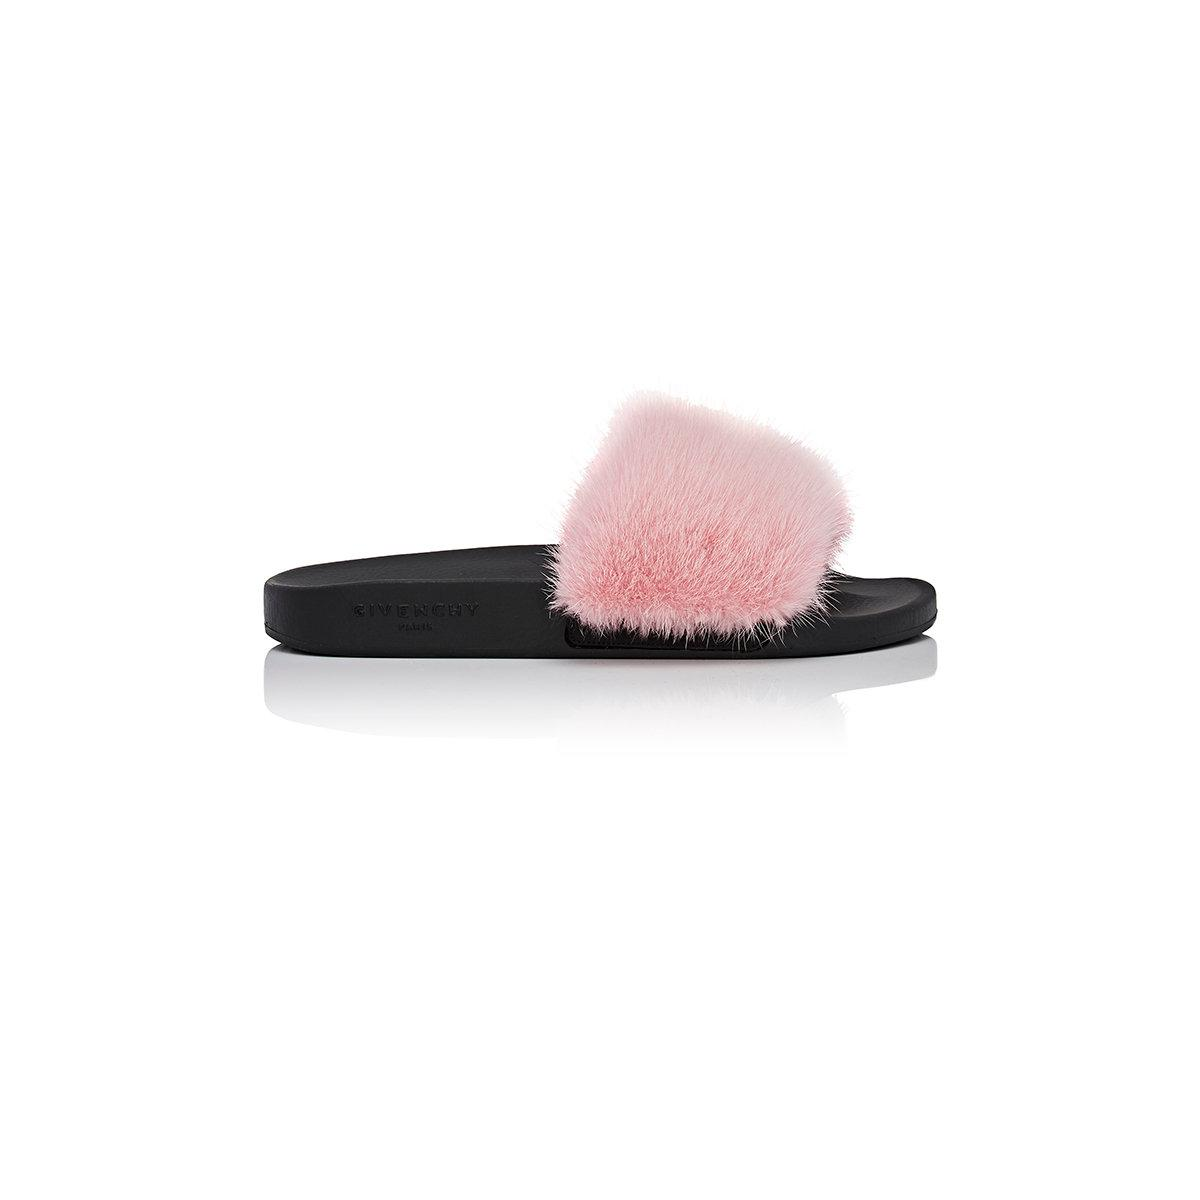 discount clearance store shopping online for sale Givenchy Finland Mink Sandals 100% guaranteed cheap online buy cheap 100% authentic CDc3wMqSOl